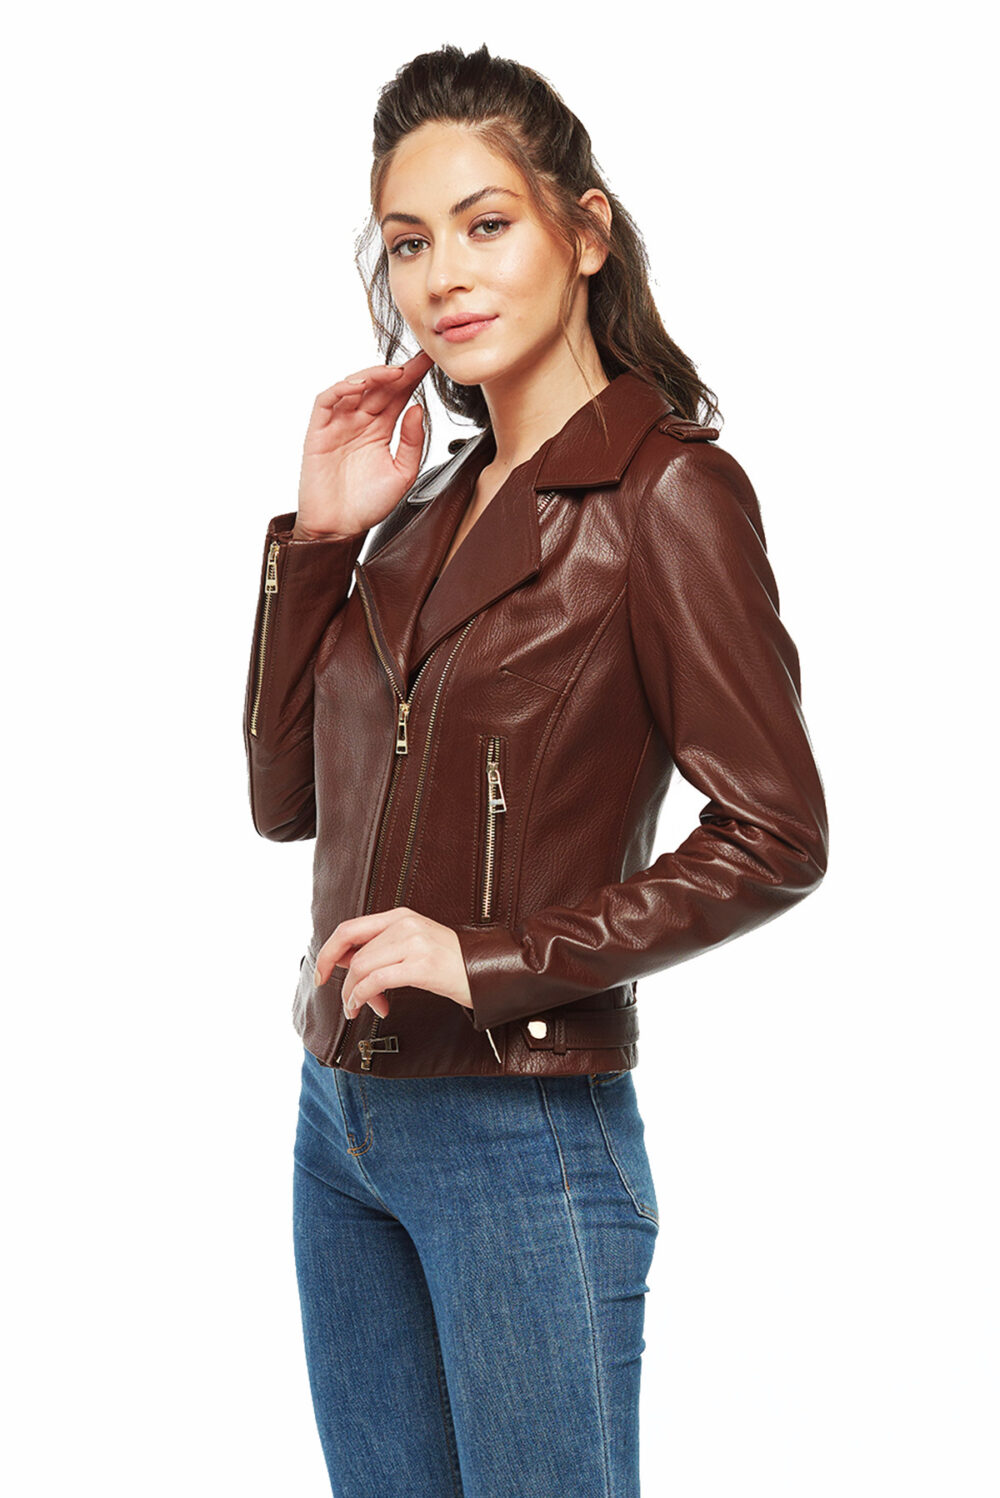 dark brown leather jacket outfit womens